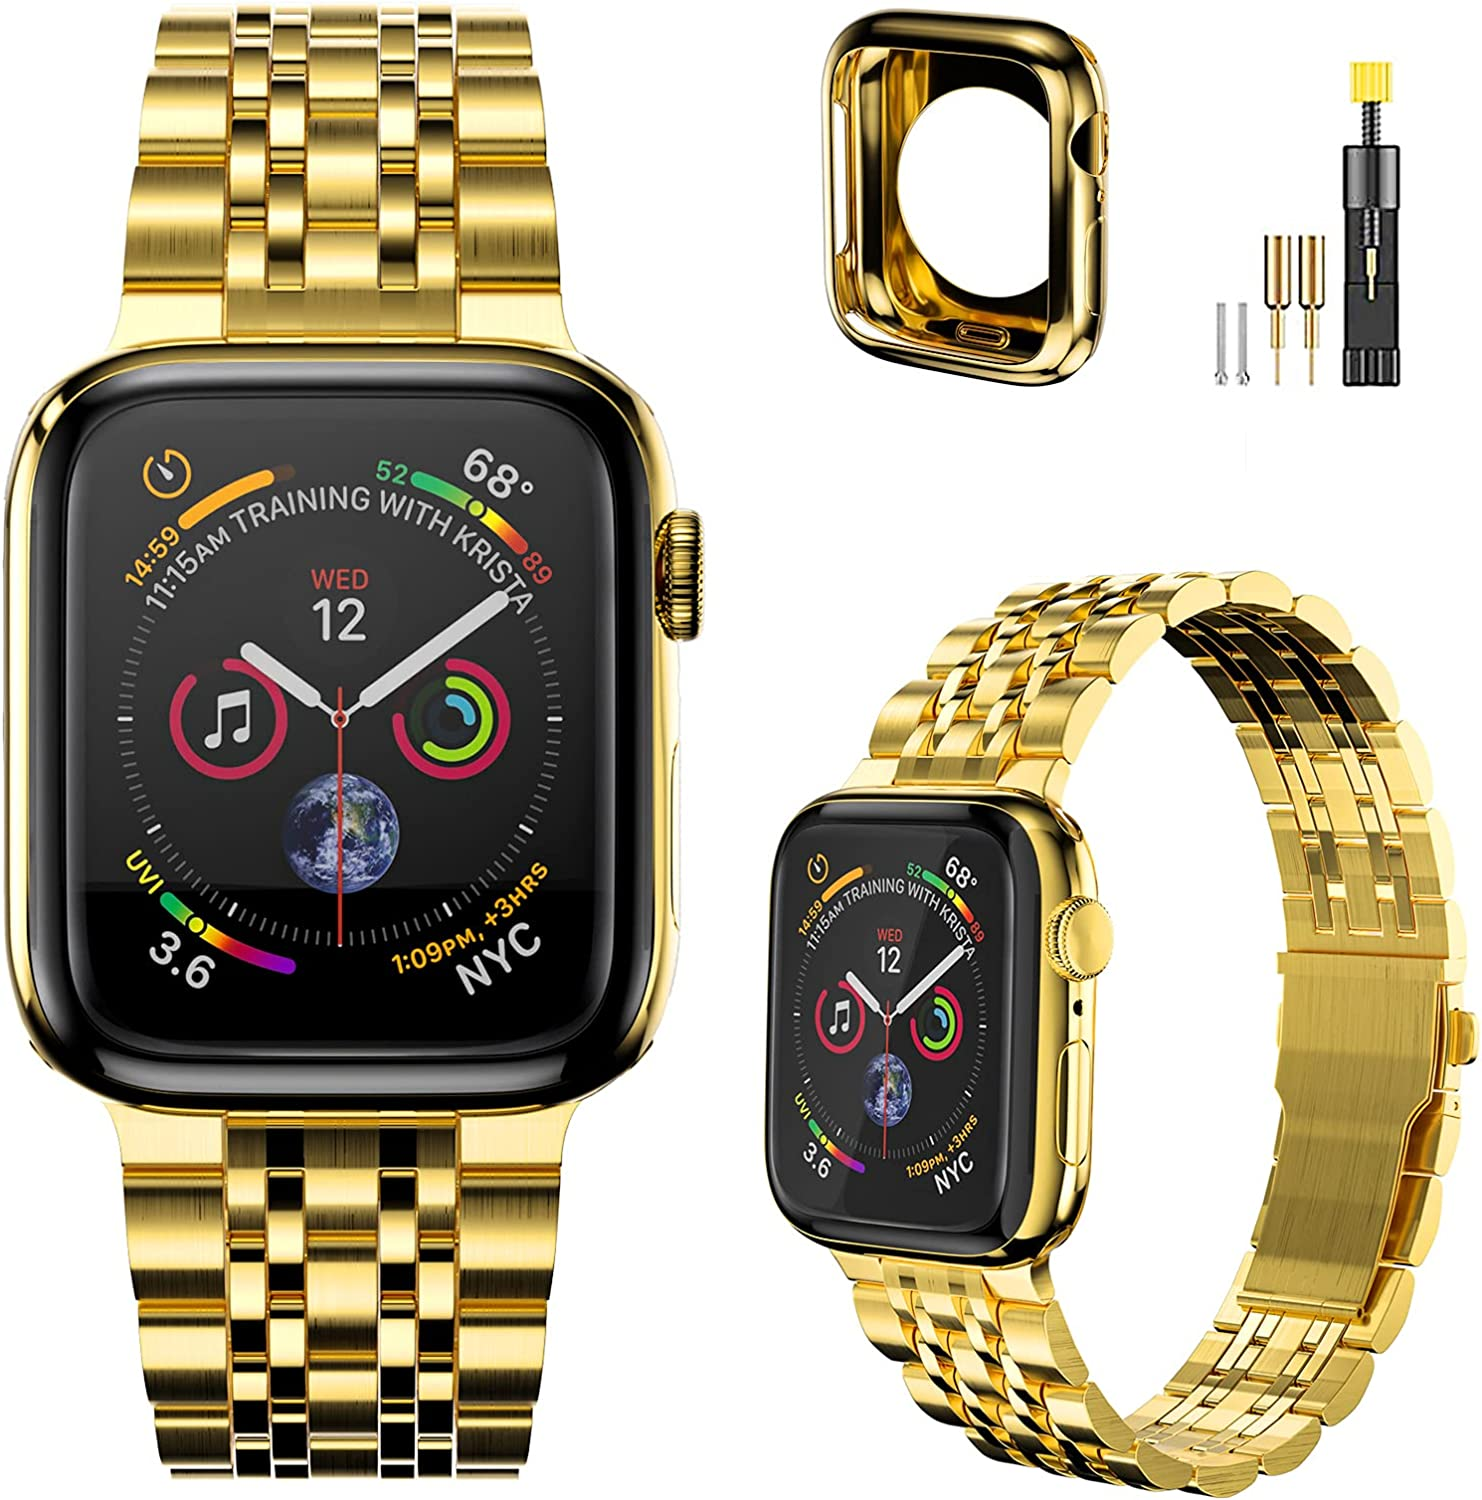 Fitlink Luxury Apple Watch Bands Compatible with Apple Watch 44mm 42mm 38mm 40mm, Upgraded Version Replacement Stainless Steel Metal Wristband for Apple Watch Series 7/6/5/4/3/2/1/SE